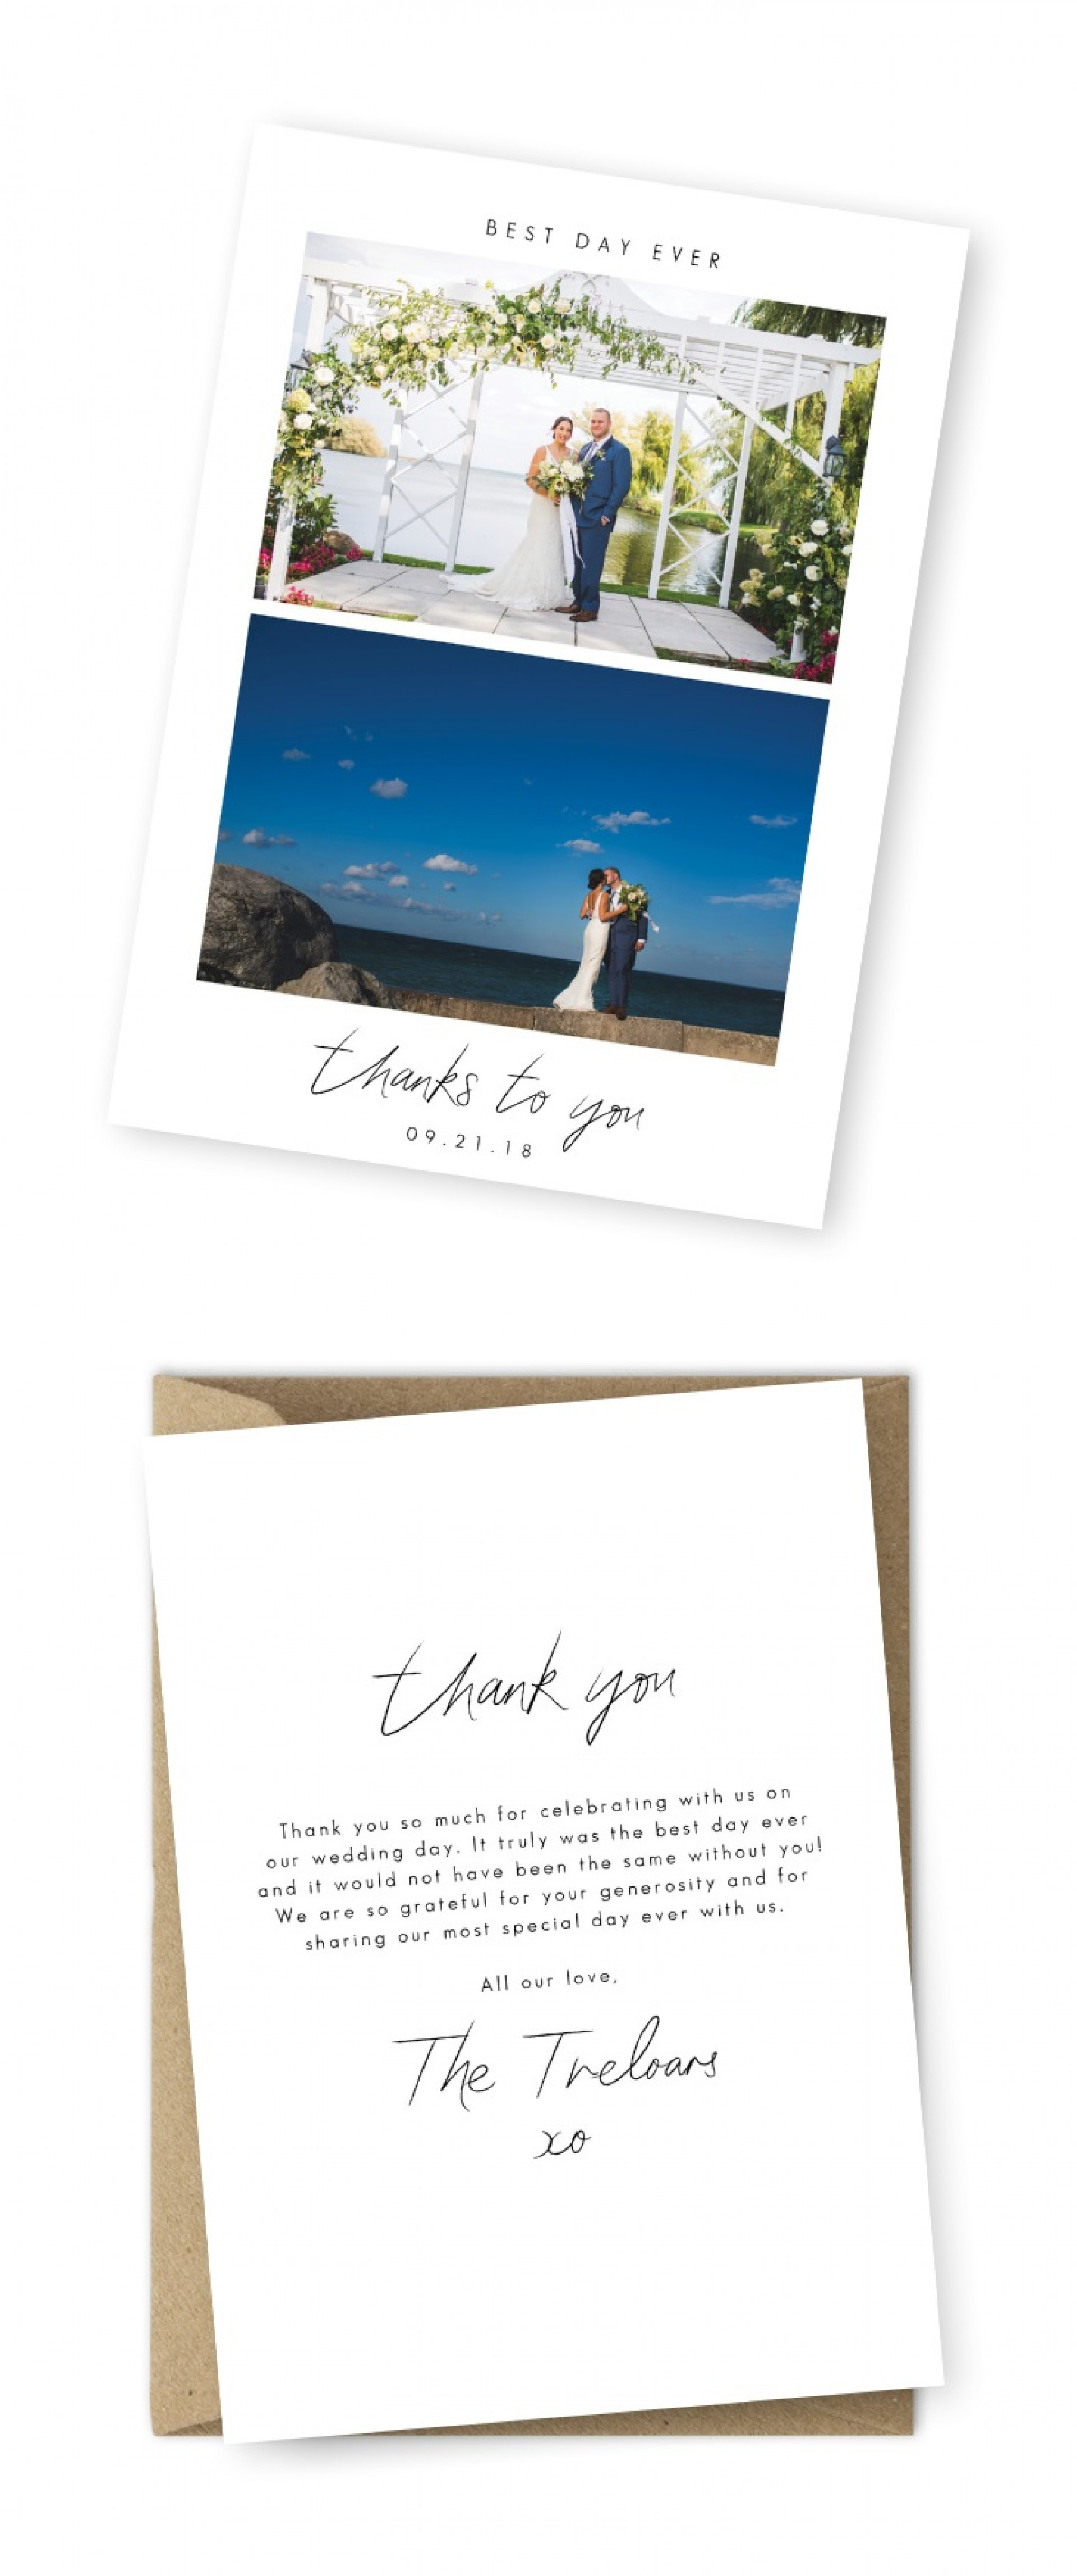 009 Frightening Thank You Card Template Wedding Design  Free Printable Publisher1920